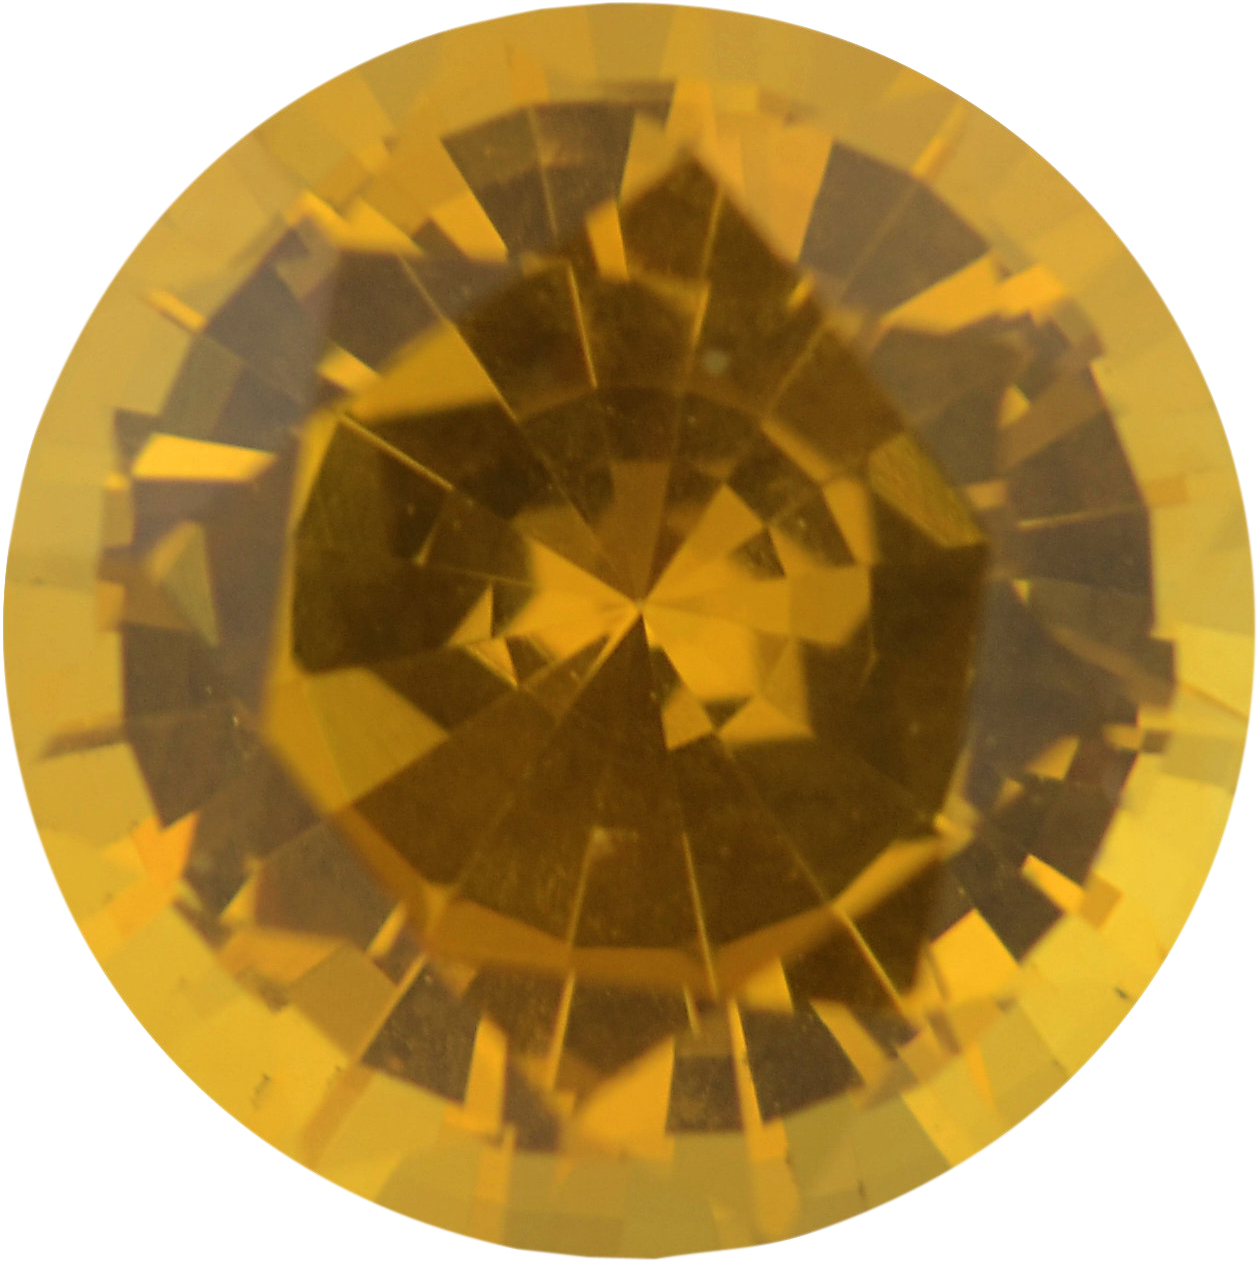 Real Sapphire Loose Gem in Round Cut, Vibrant Orangy Yellow, 6 mm, 1.01 Carats